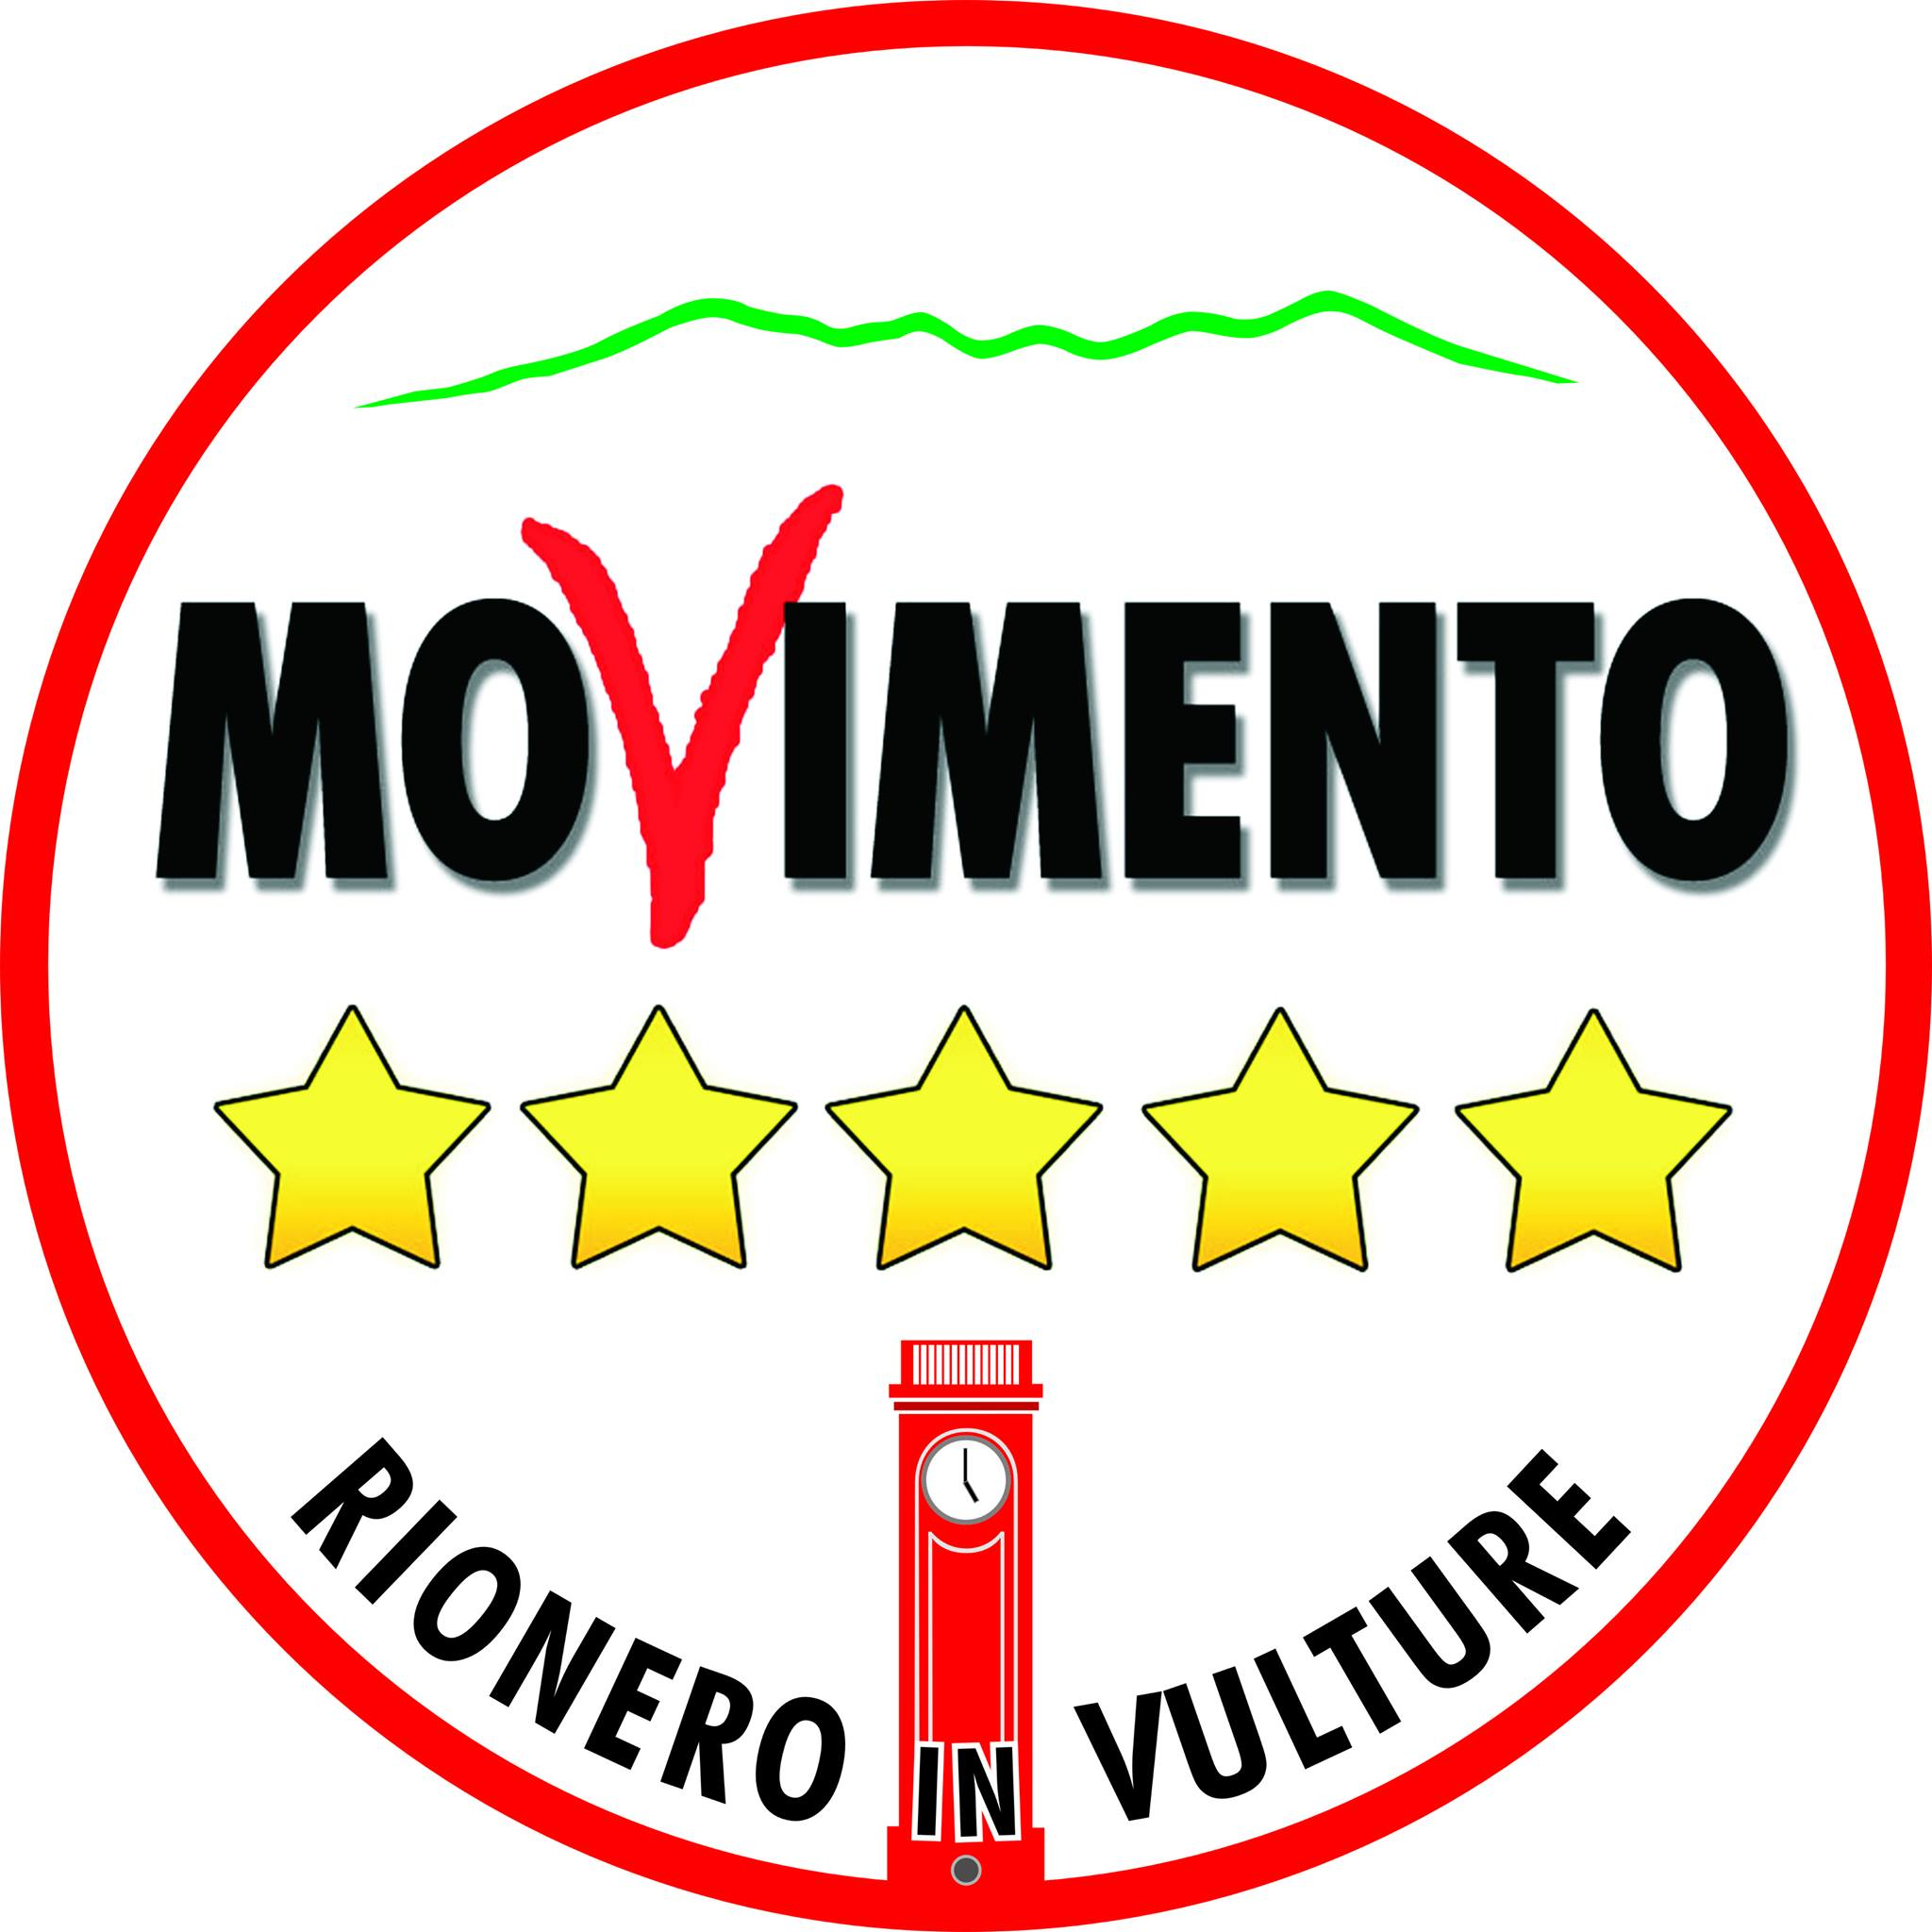 Movimento 5 Stelle Rionero in Vulture